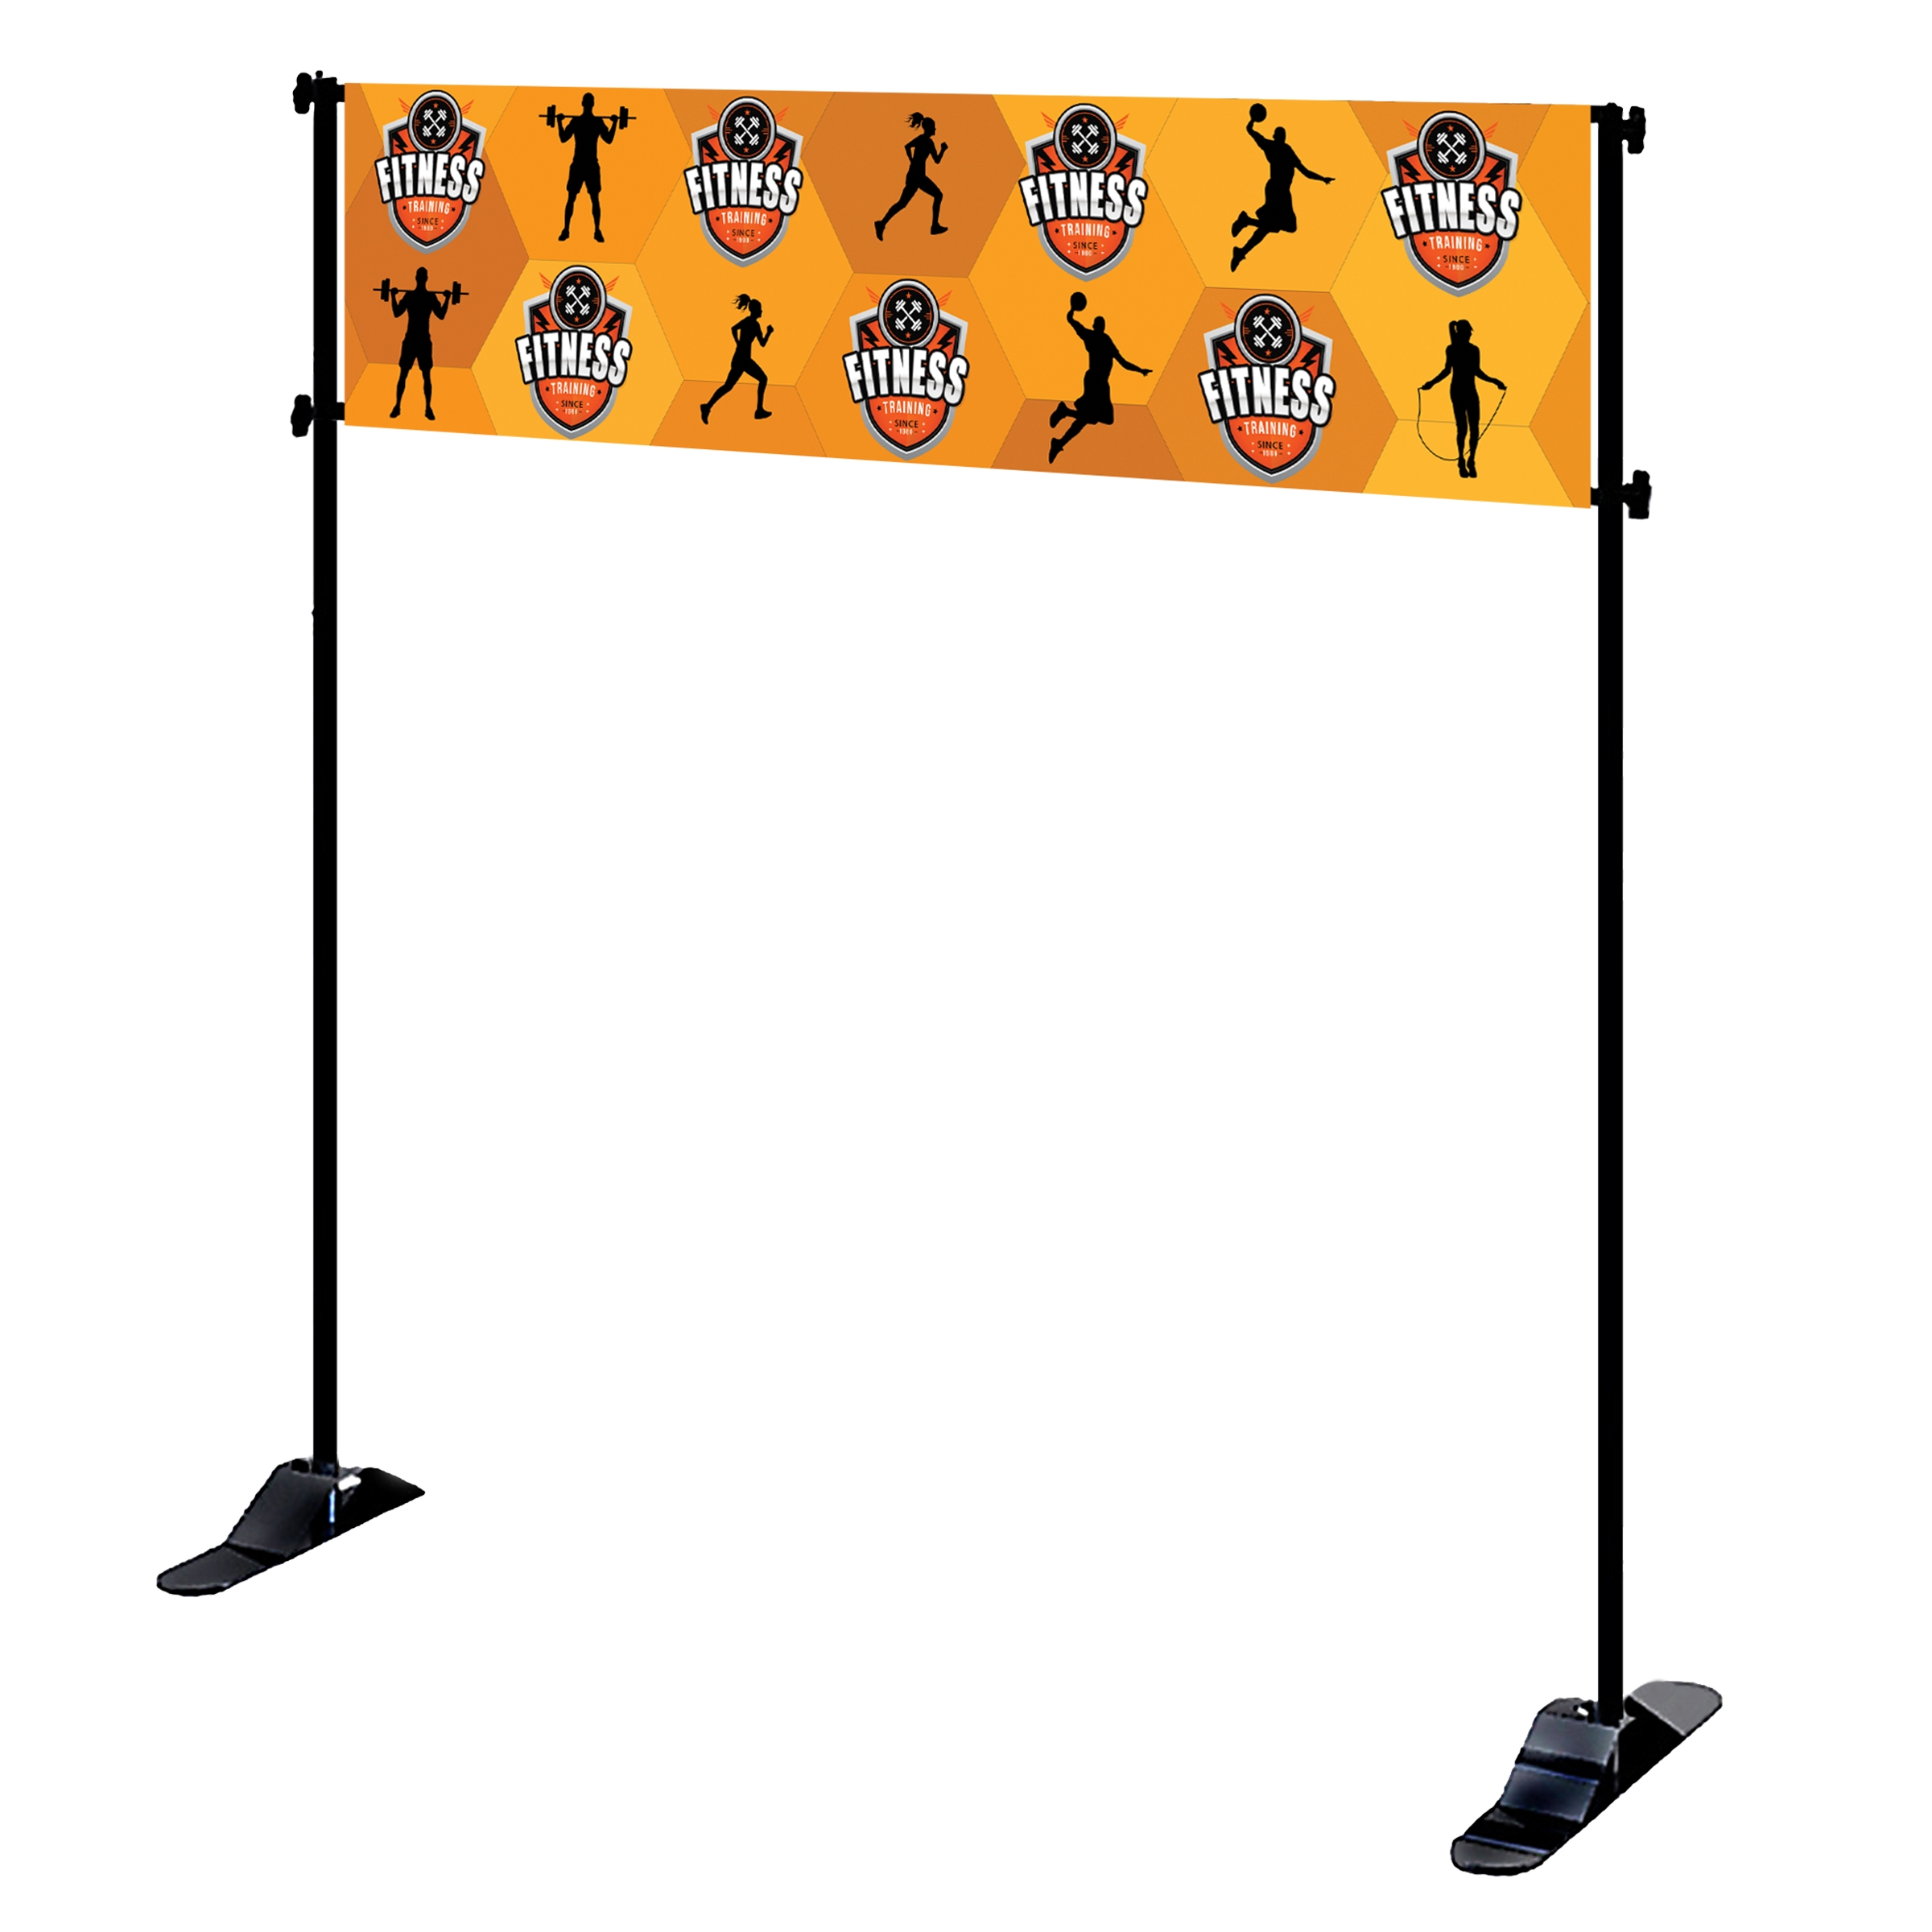 Mighty Banner Display - 8' x 2' Large Tube Frame and Fabric Graphic Kit